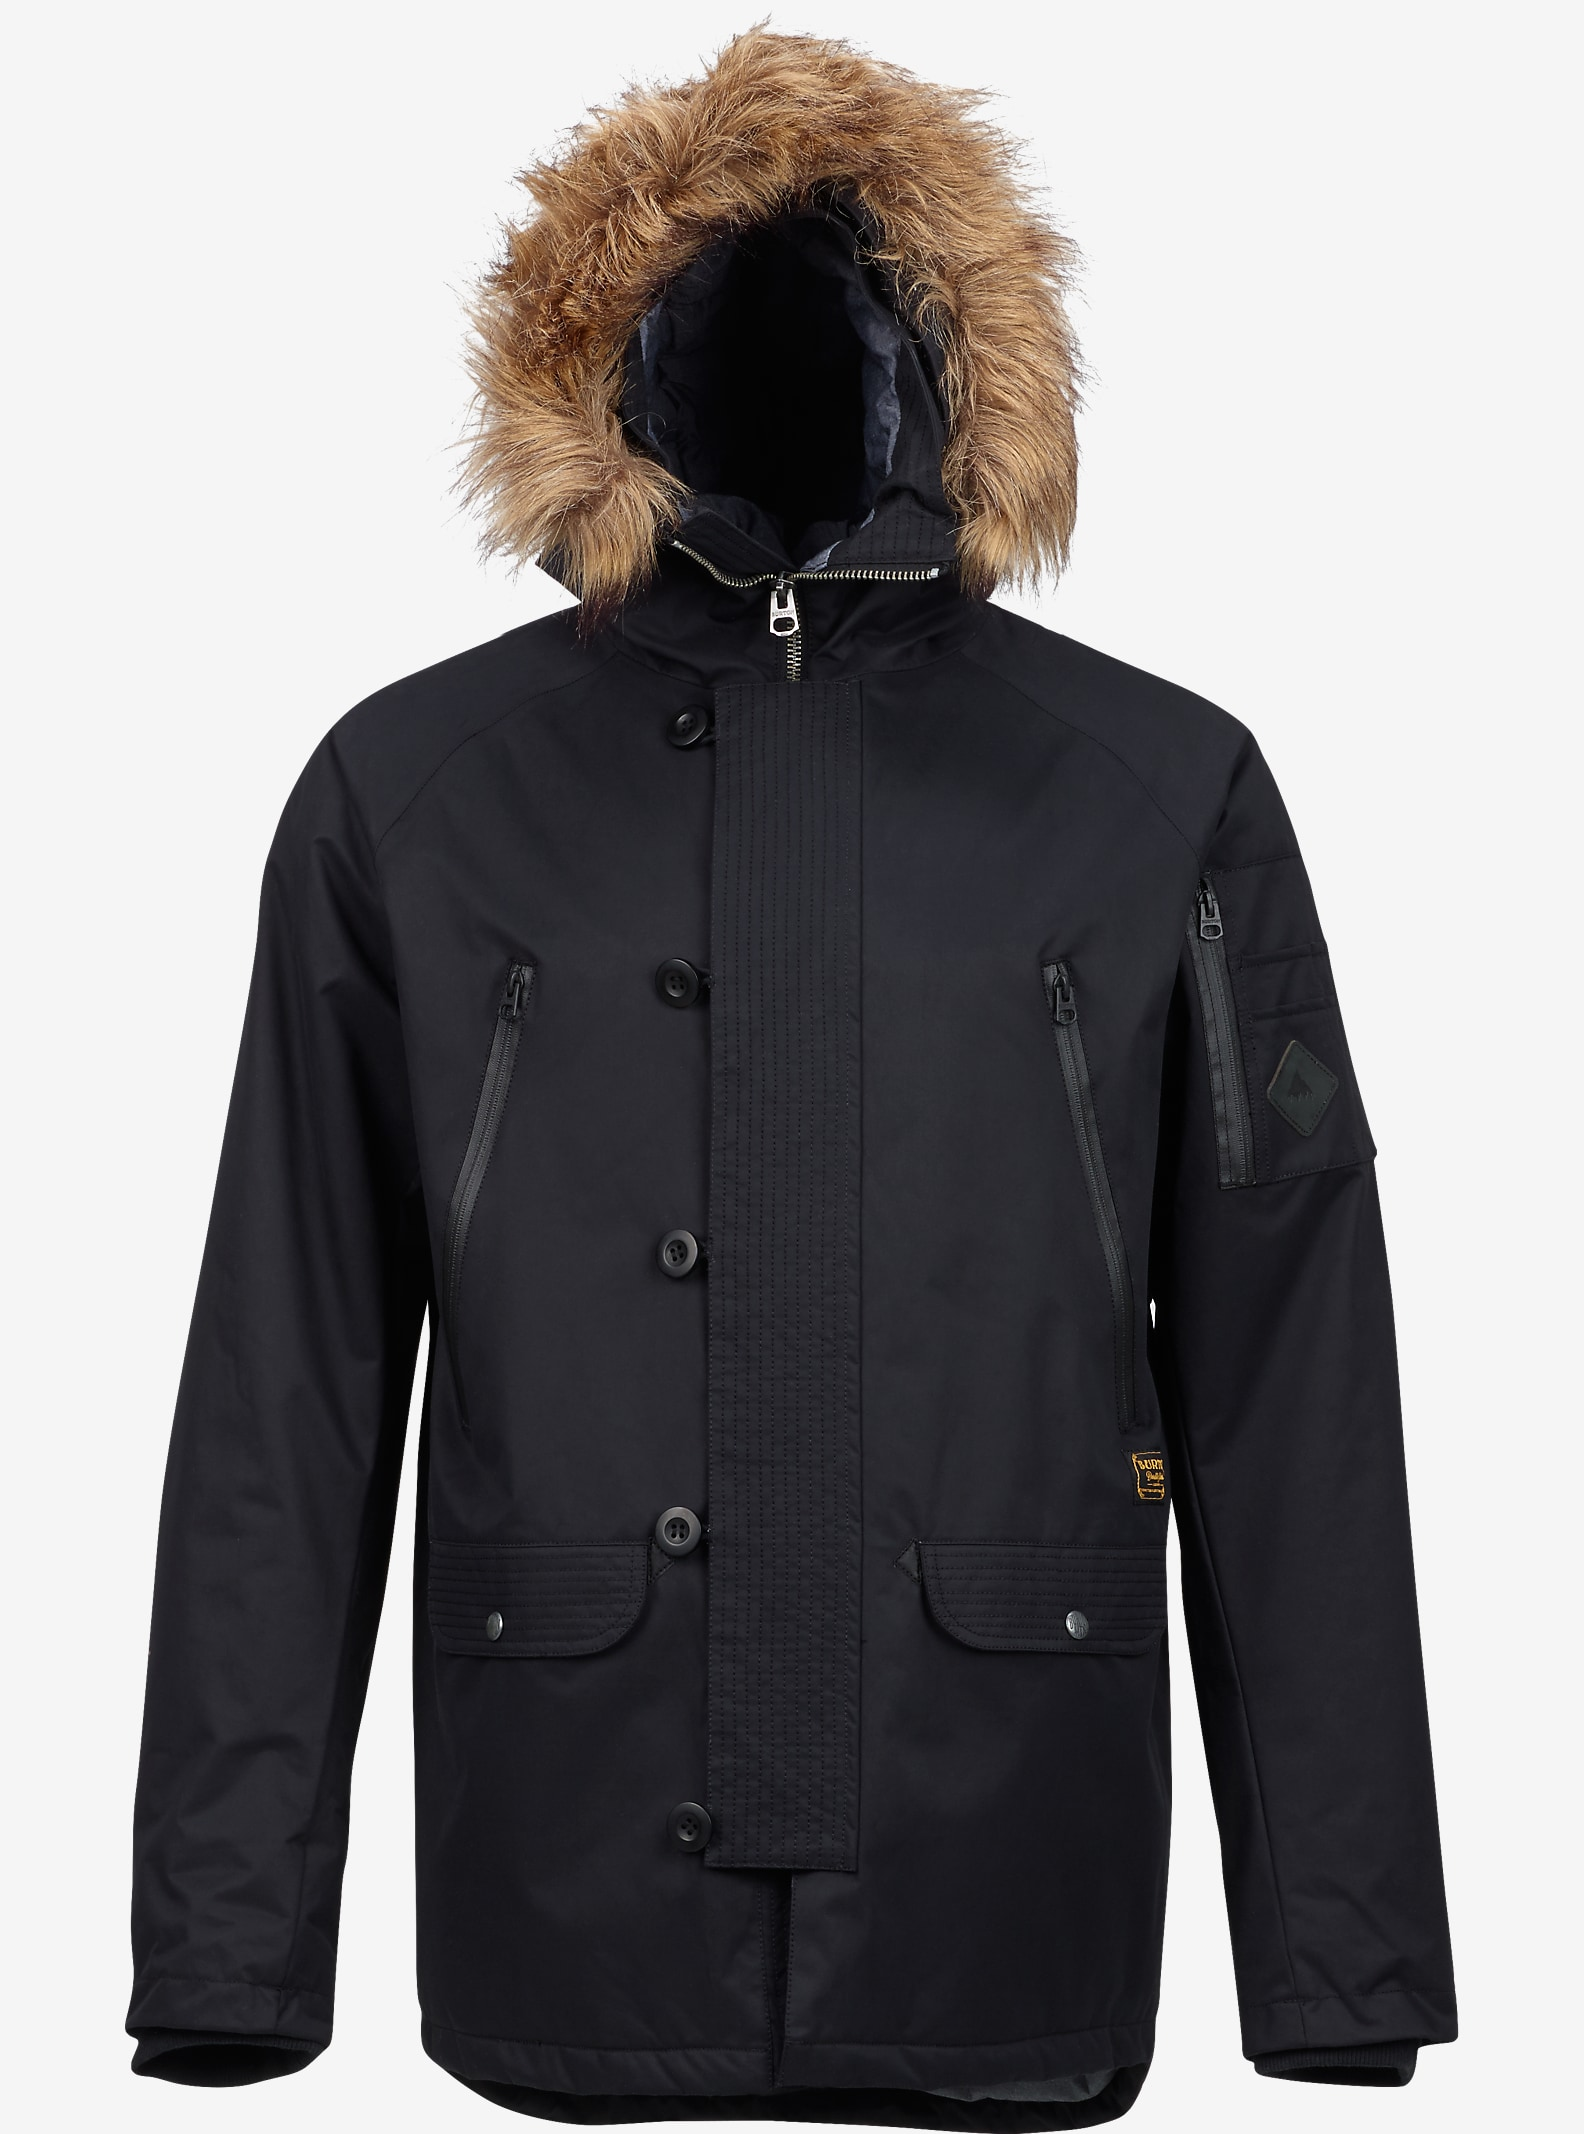 Burton Bryce Jacket shown in True Black